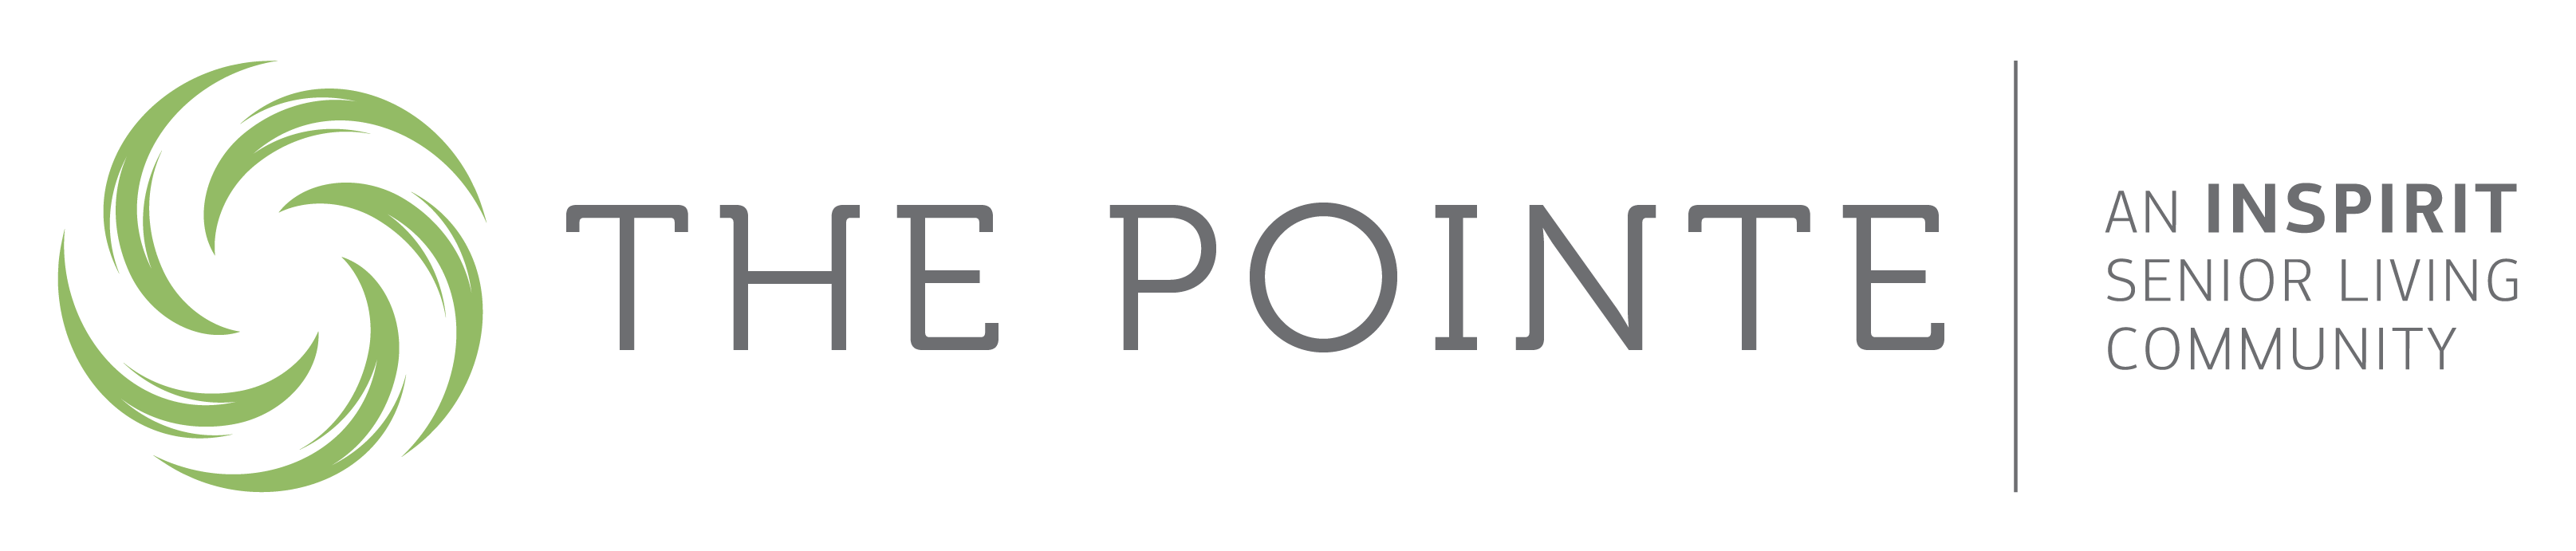 The Pointe logo